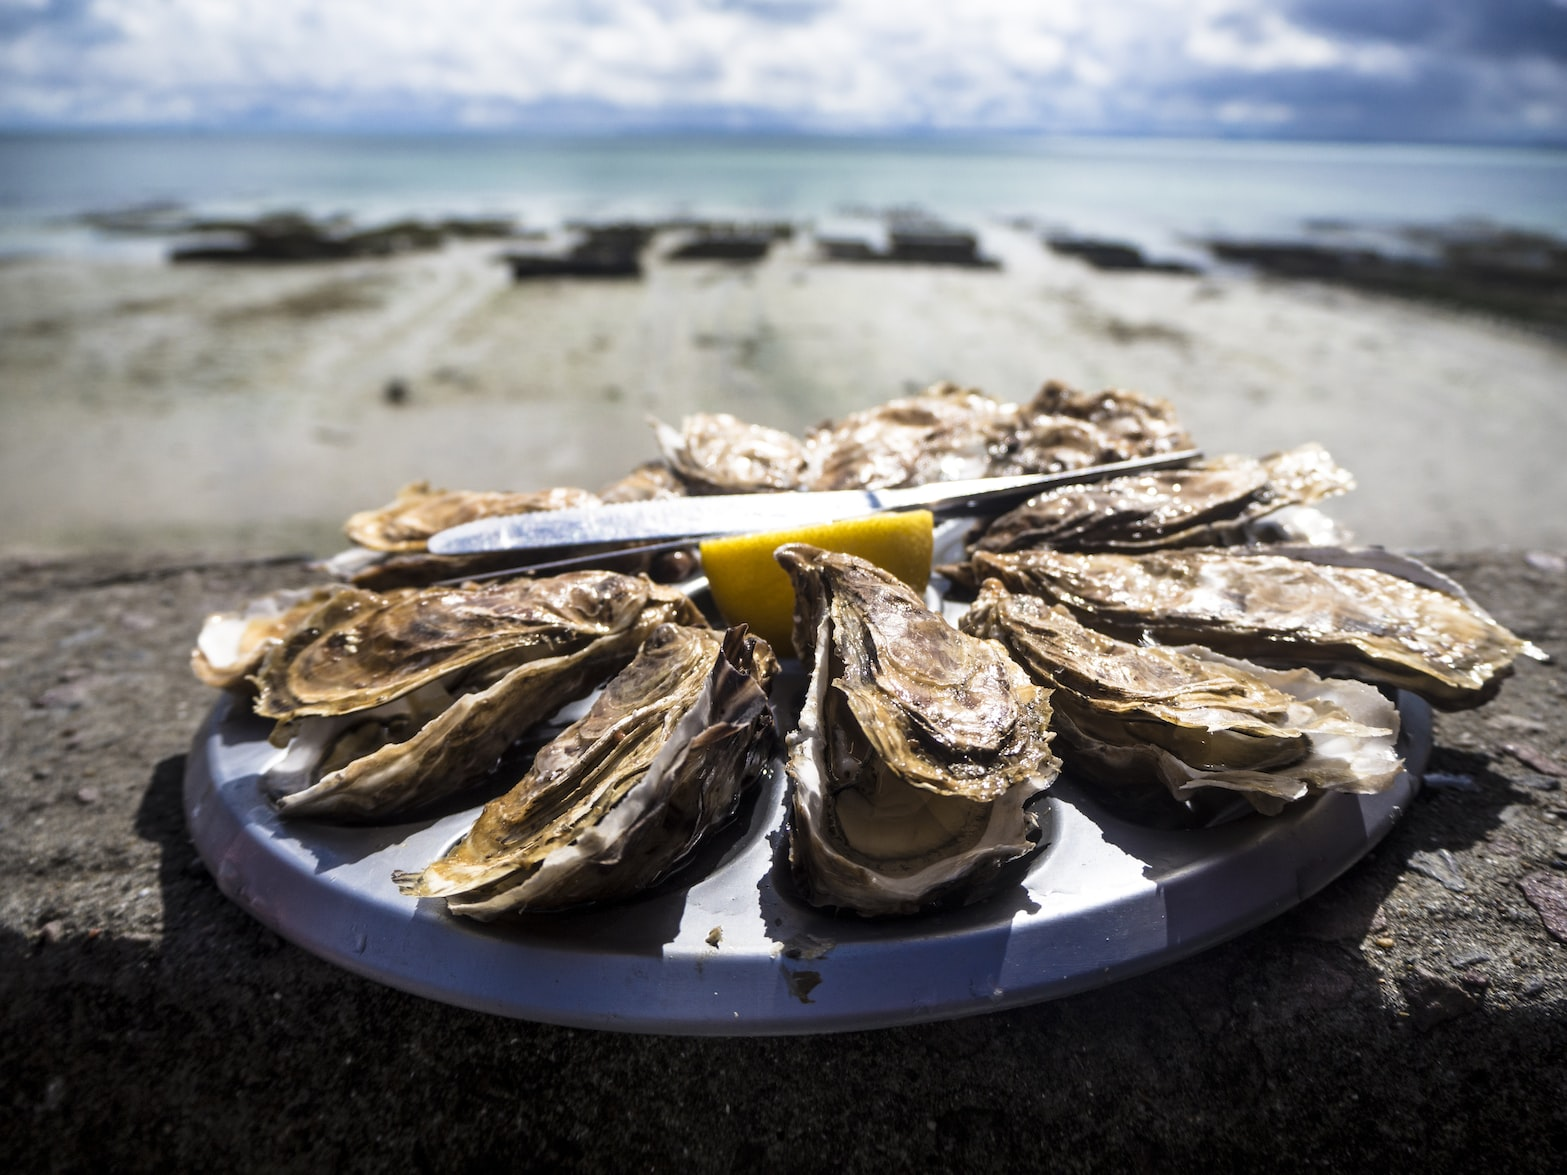 Gulf Oysters Are Dying, Putting a Southern Tradition at Risk